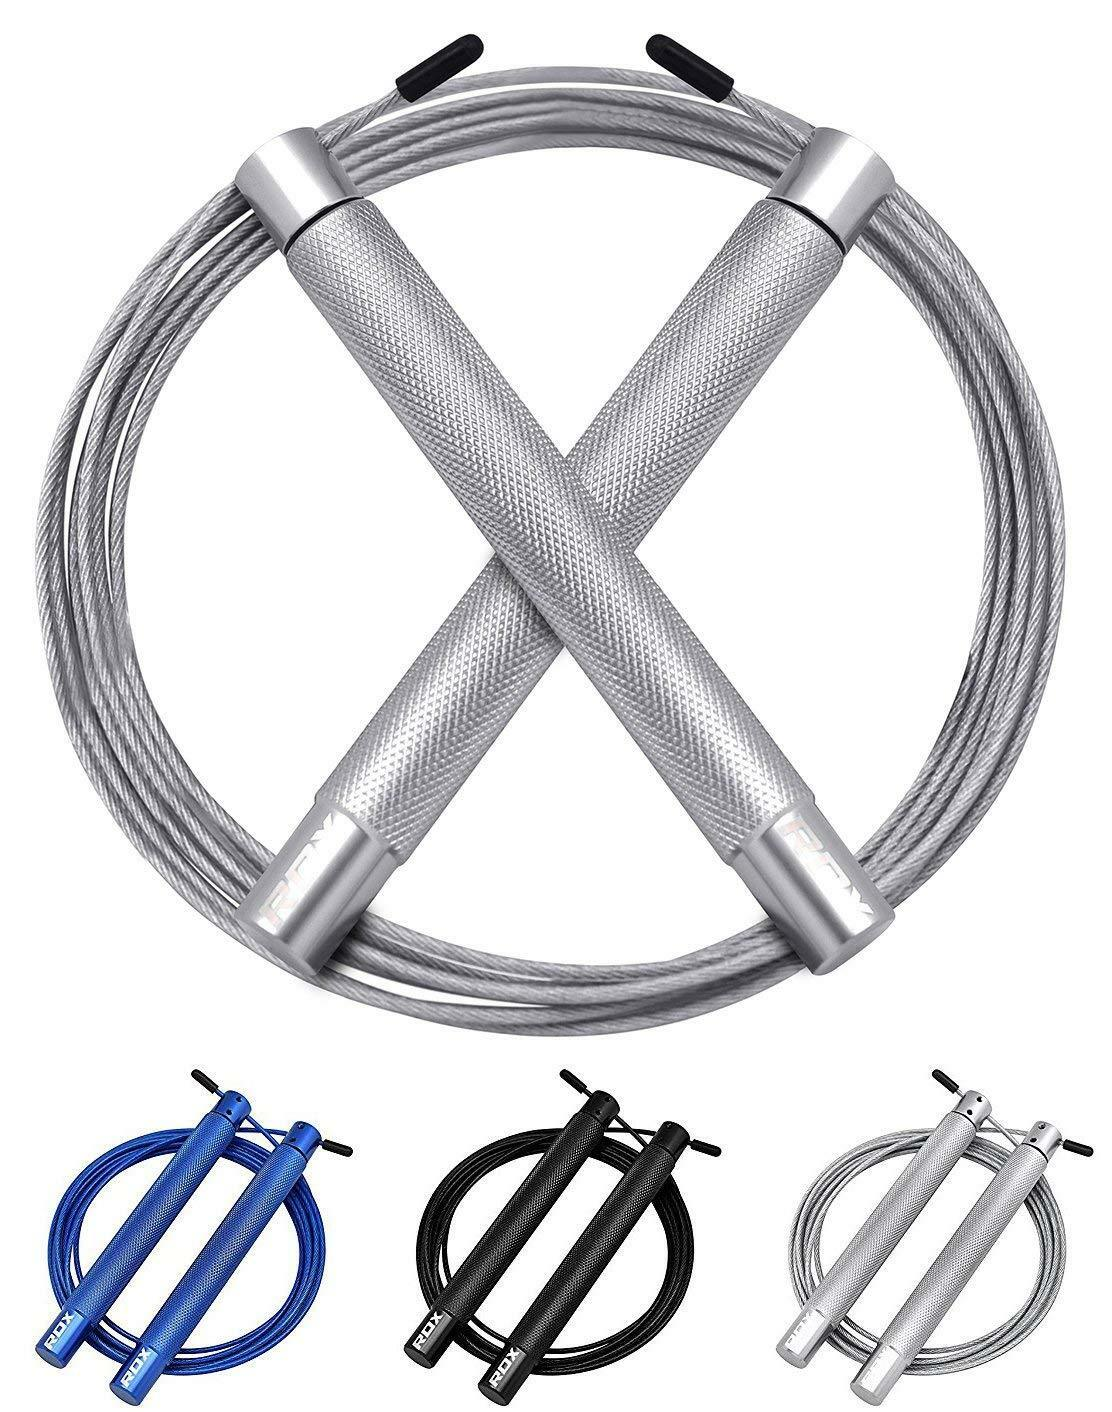 RDX Skipping Rope Speed Jumping Fitness Gym Exercise Boxing Crossfit Training C4